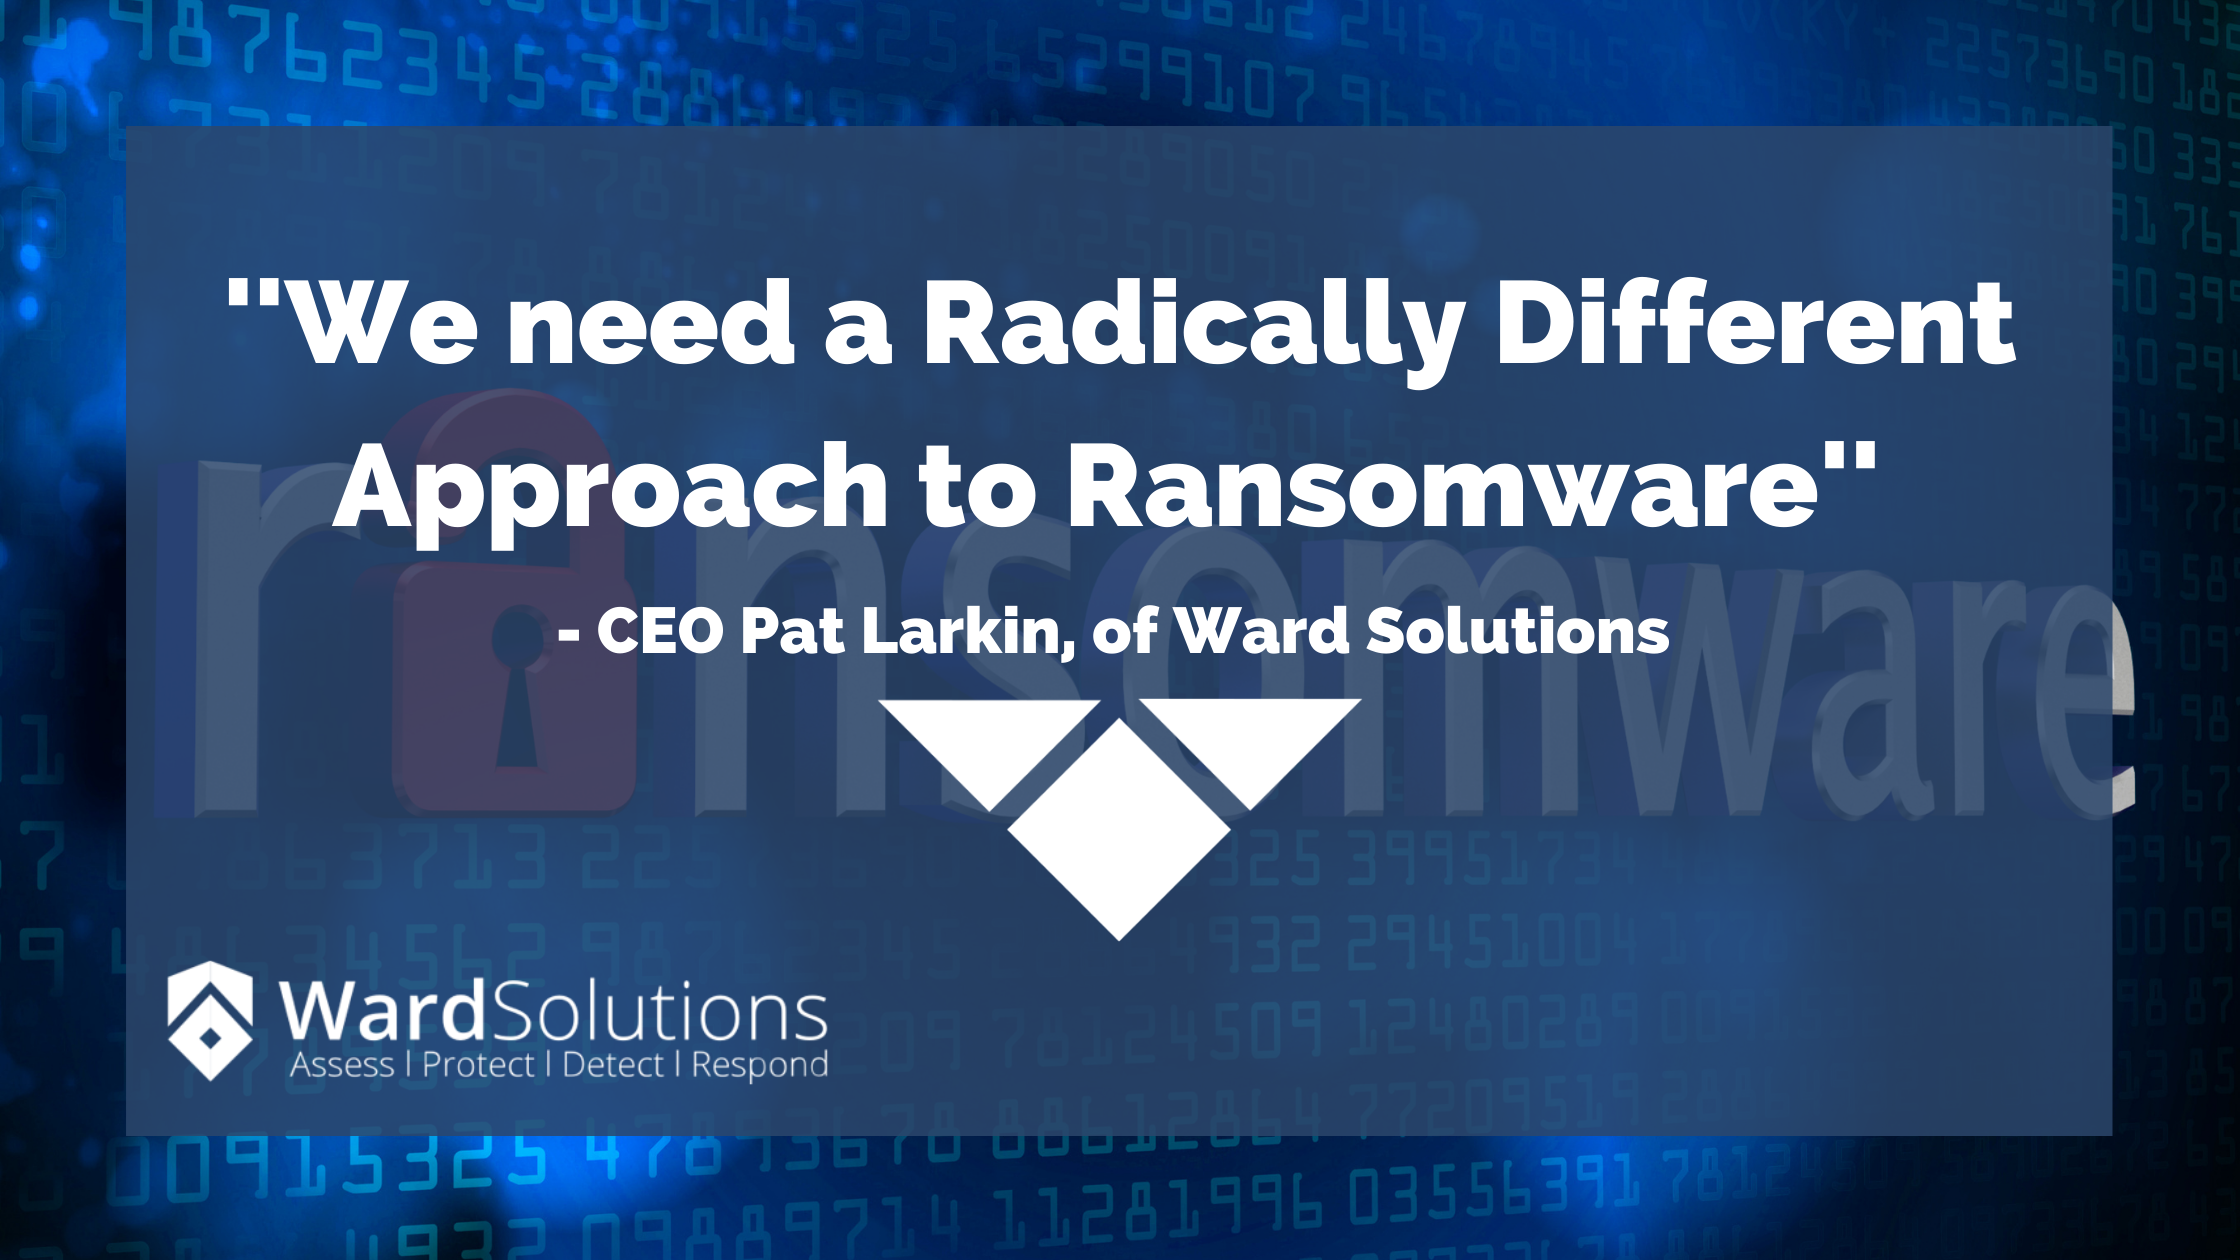 We need a Radically Different Approach to Ransomware